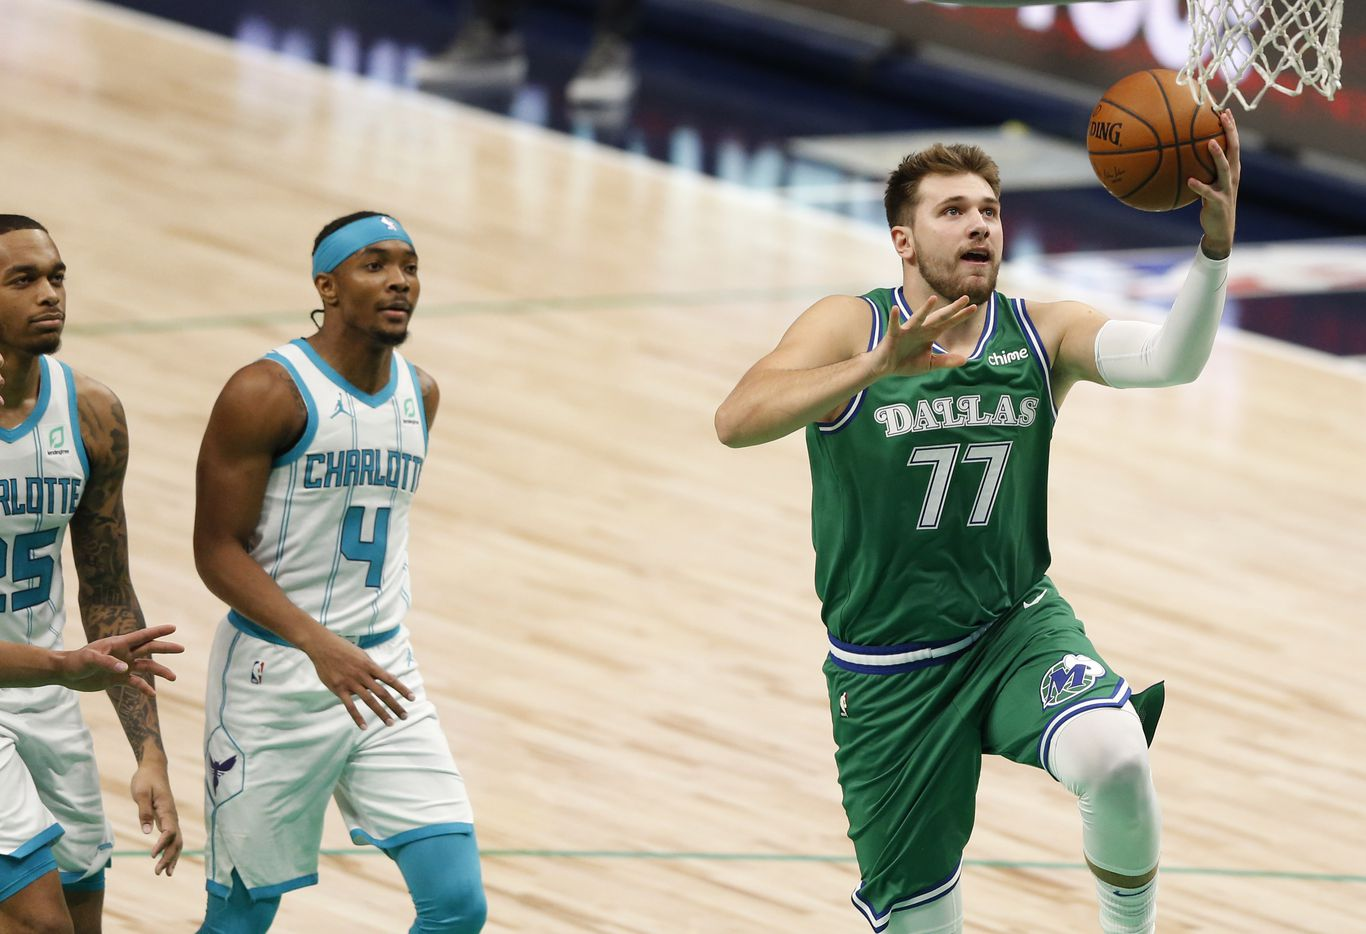 Dallas Mavericks guard Luka Doncic (77) attempts a layup in a game against the Charlotte Hornets during the first quarter of play in the home opener at American Airlines Center on Wednesday, December 30, 2020 in Dallas. (Vernon Bryant/The Dallas Morning News)